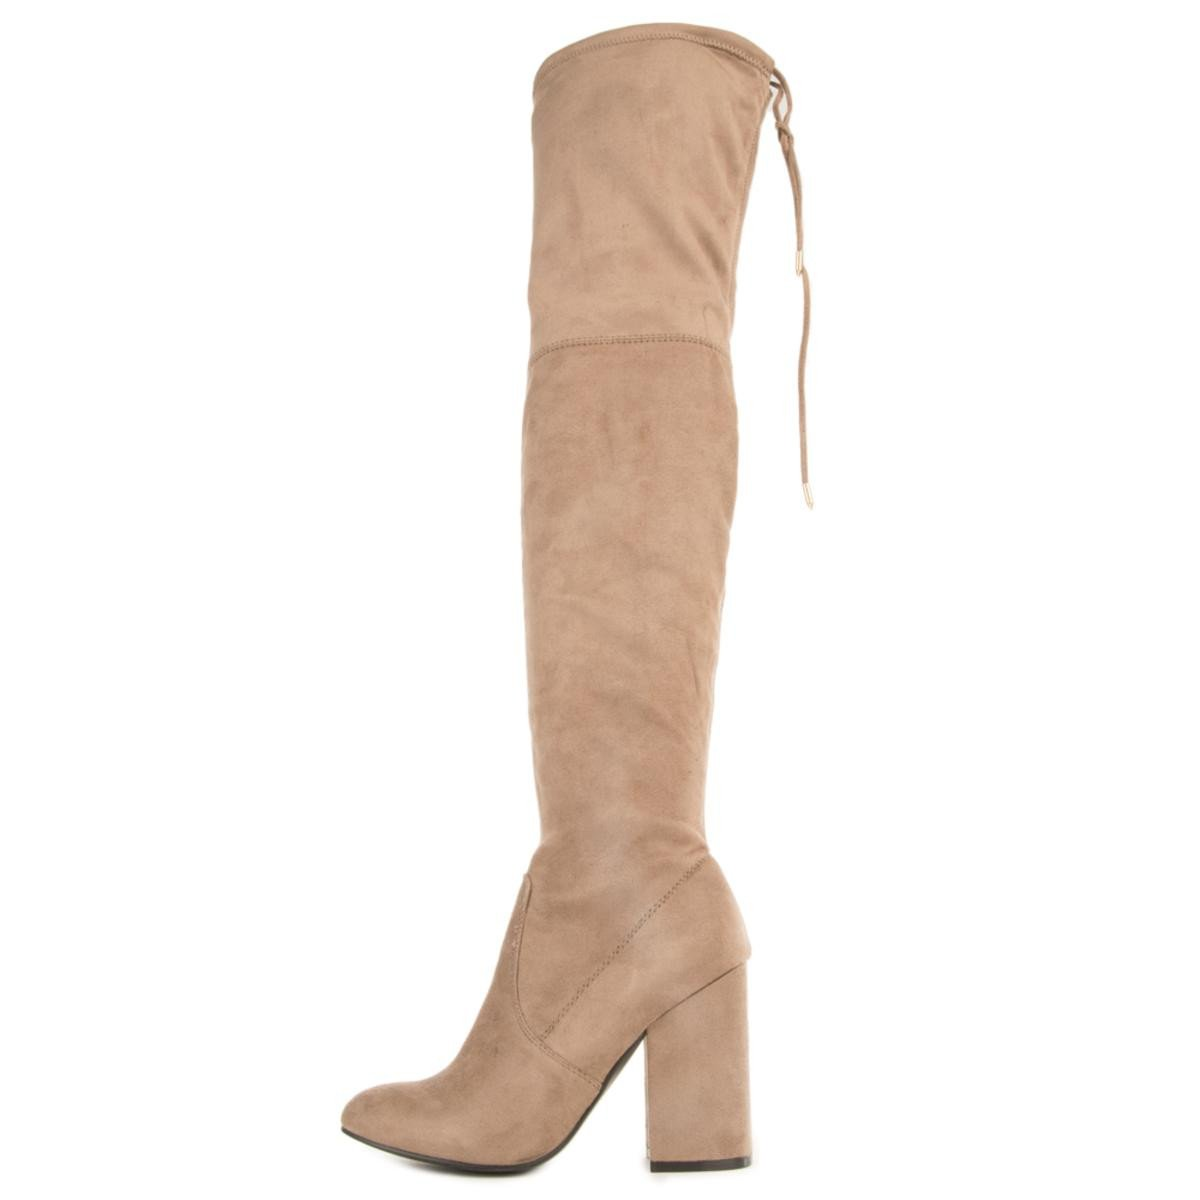 Steve Madden for Women: Norri Taupe Thigh High Heeled Boots